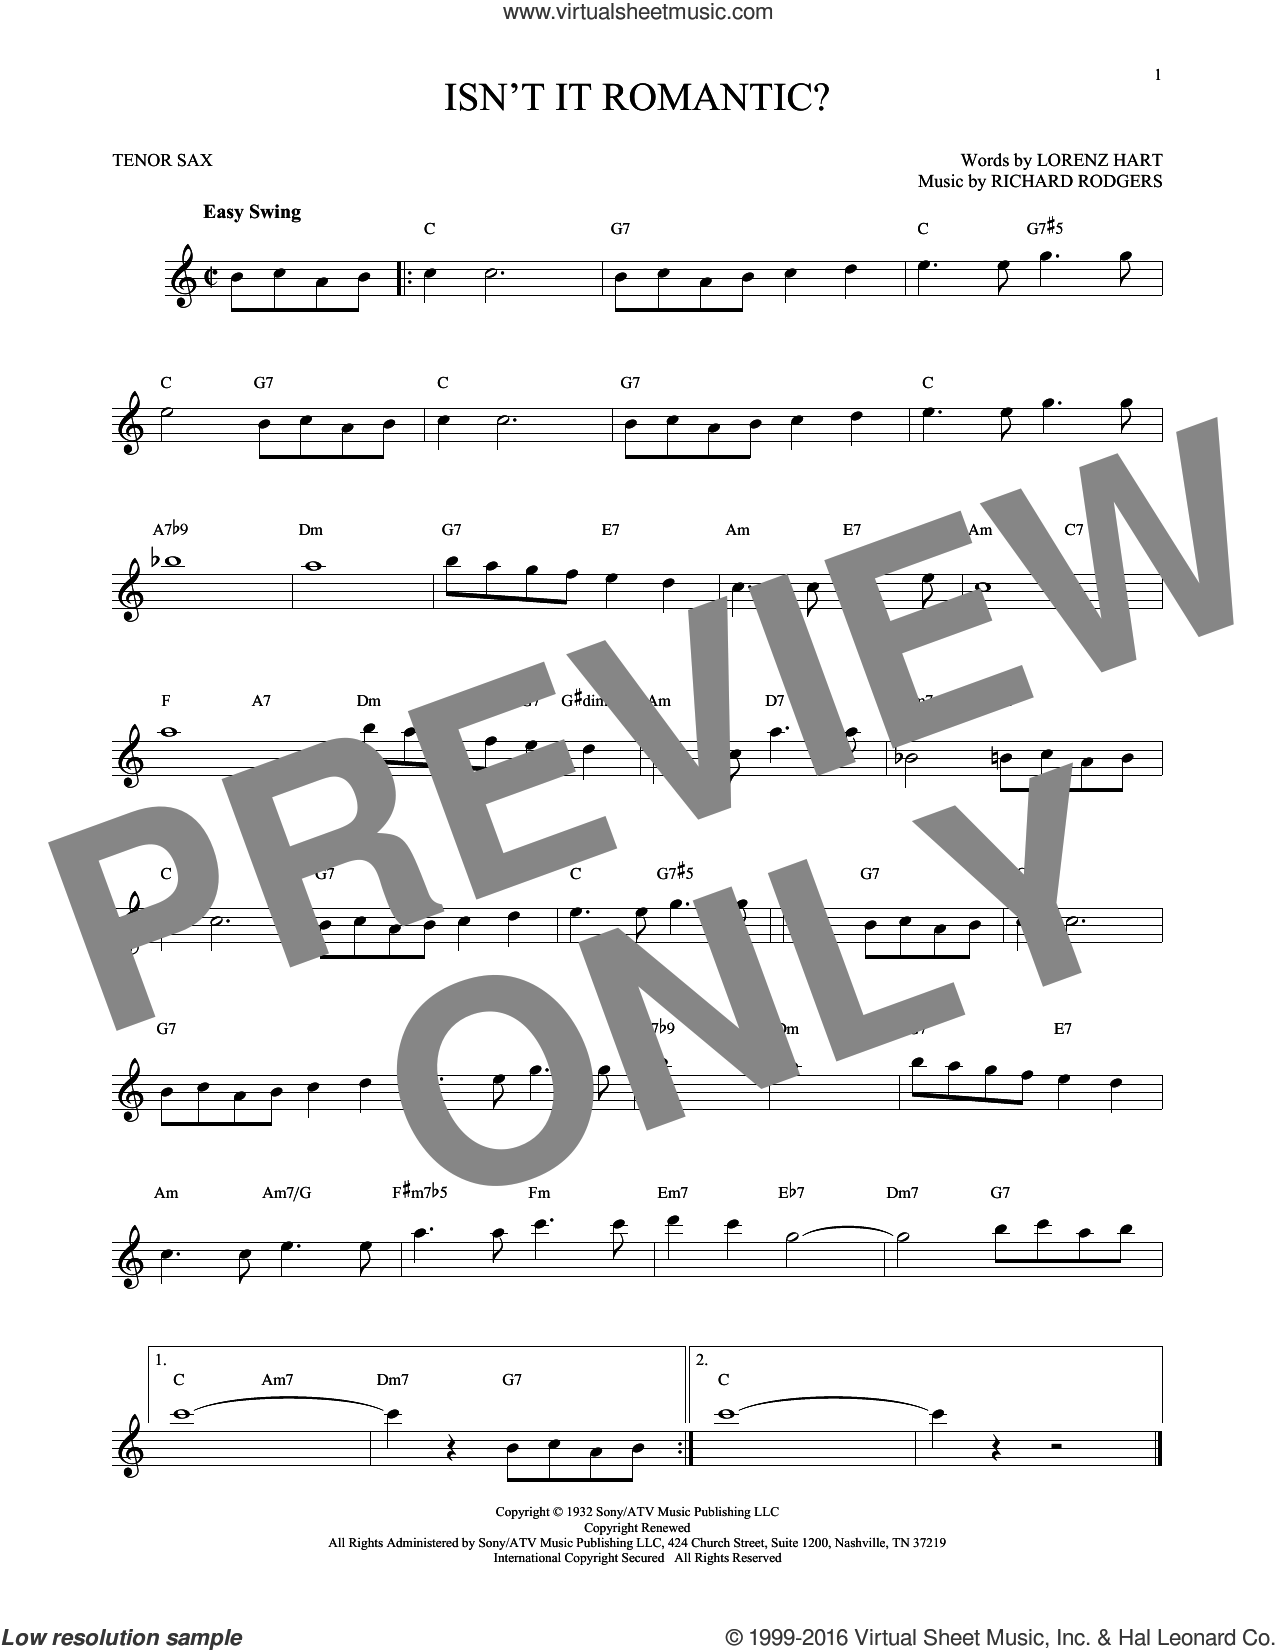 Isn't It Romantic? sheet music for tenor saxophone solo by Rodgers & Hart, Shirley Horn, Lorenz Hart and Richard Rodgers, intermediate skill level